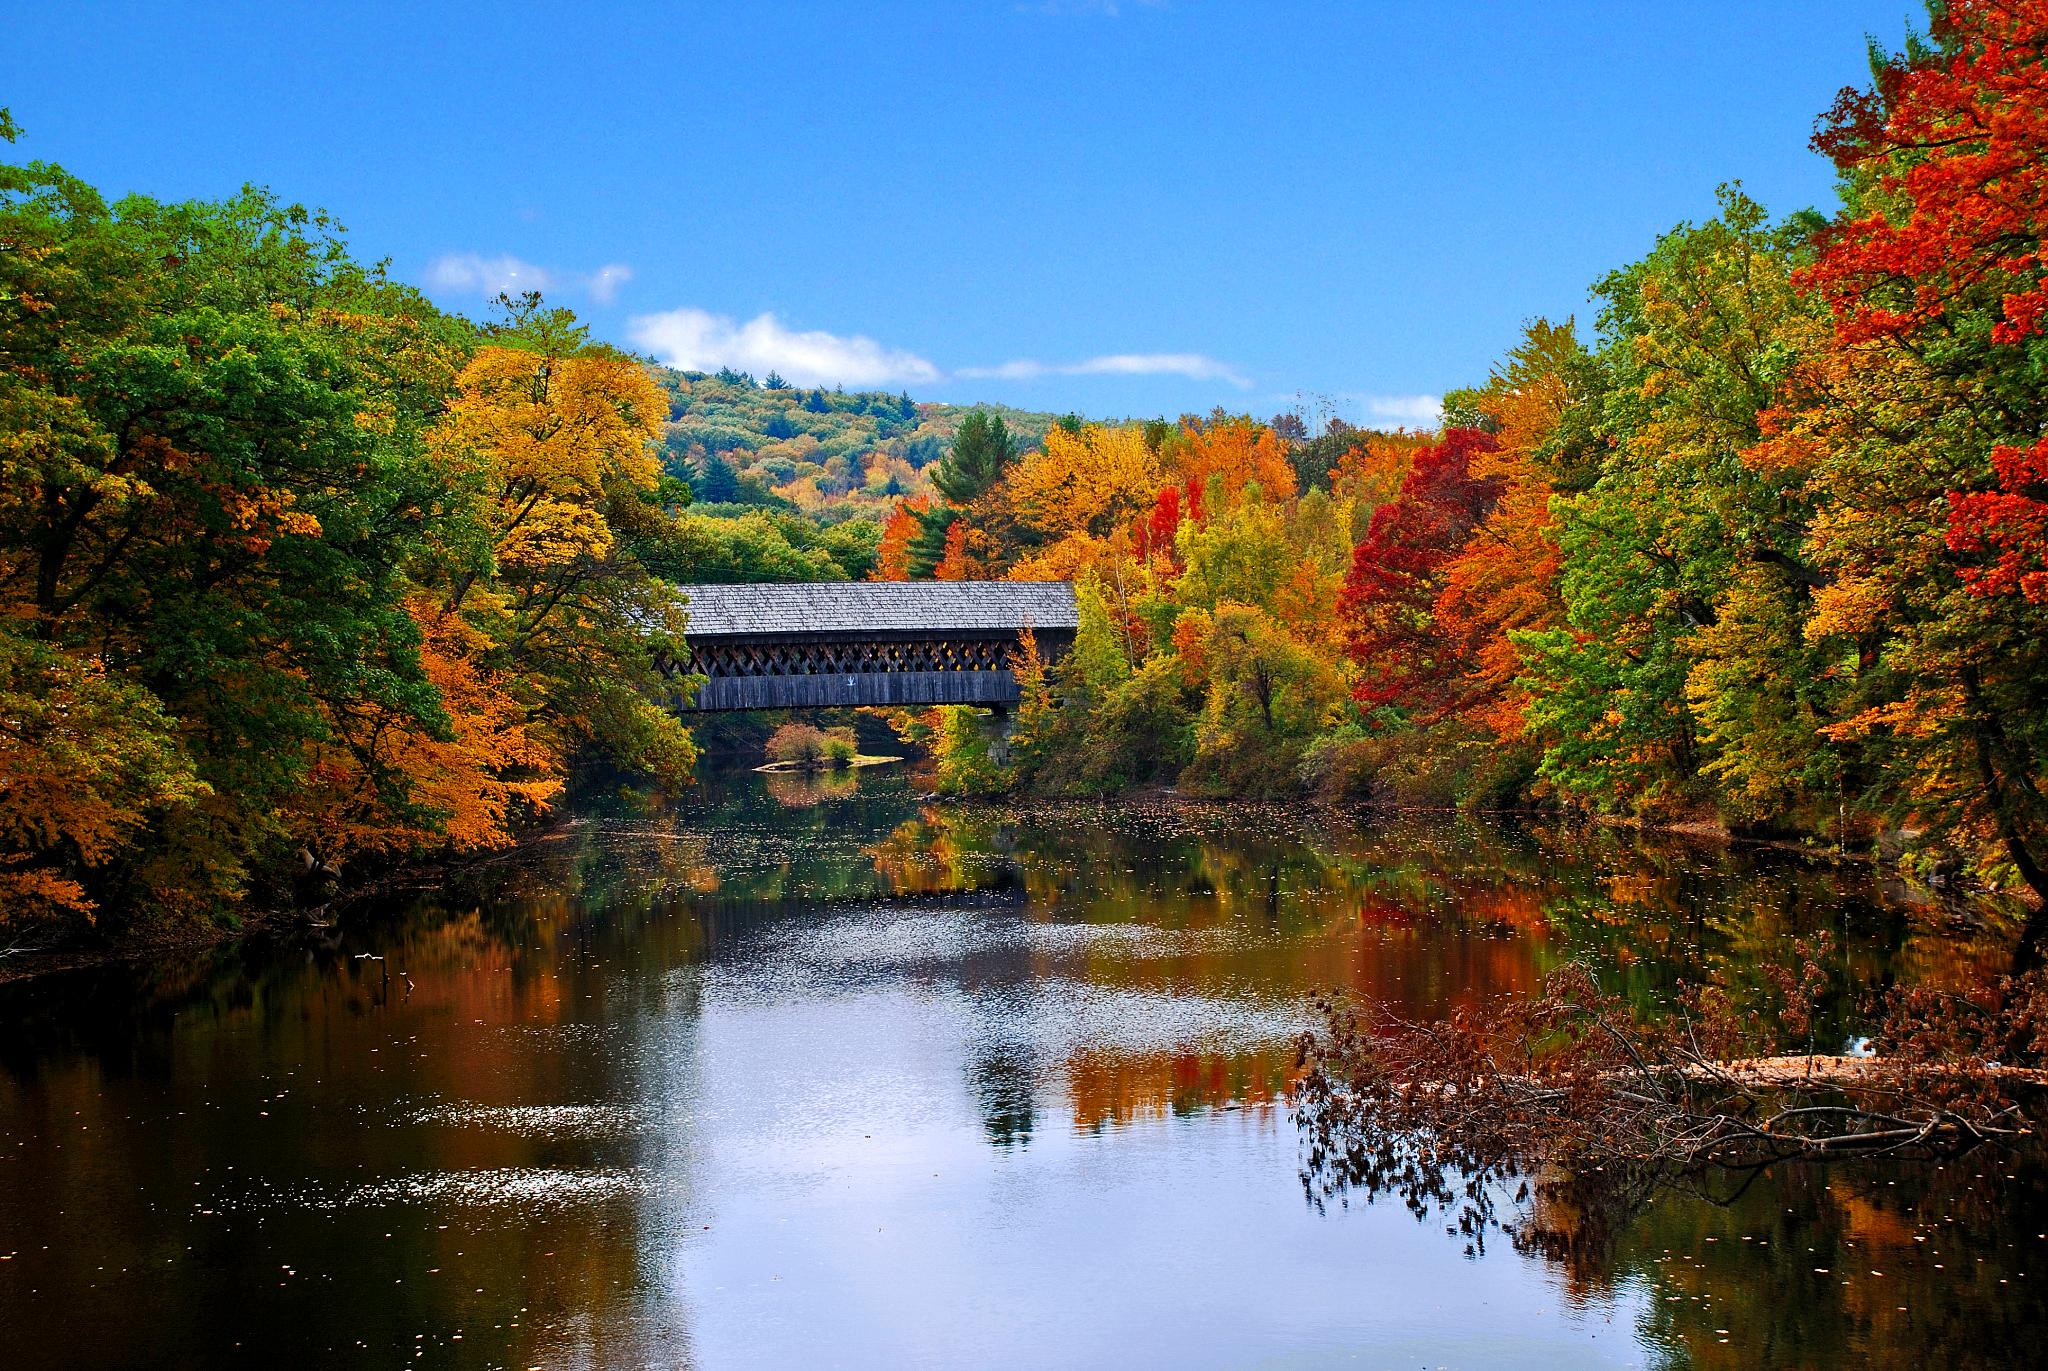 New England Fall Computer Wallpaper Bridge Over The Contoocook In Henniker Nh New England Today